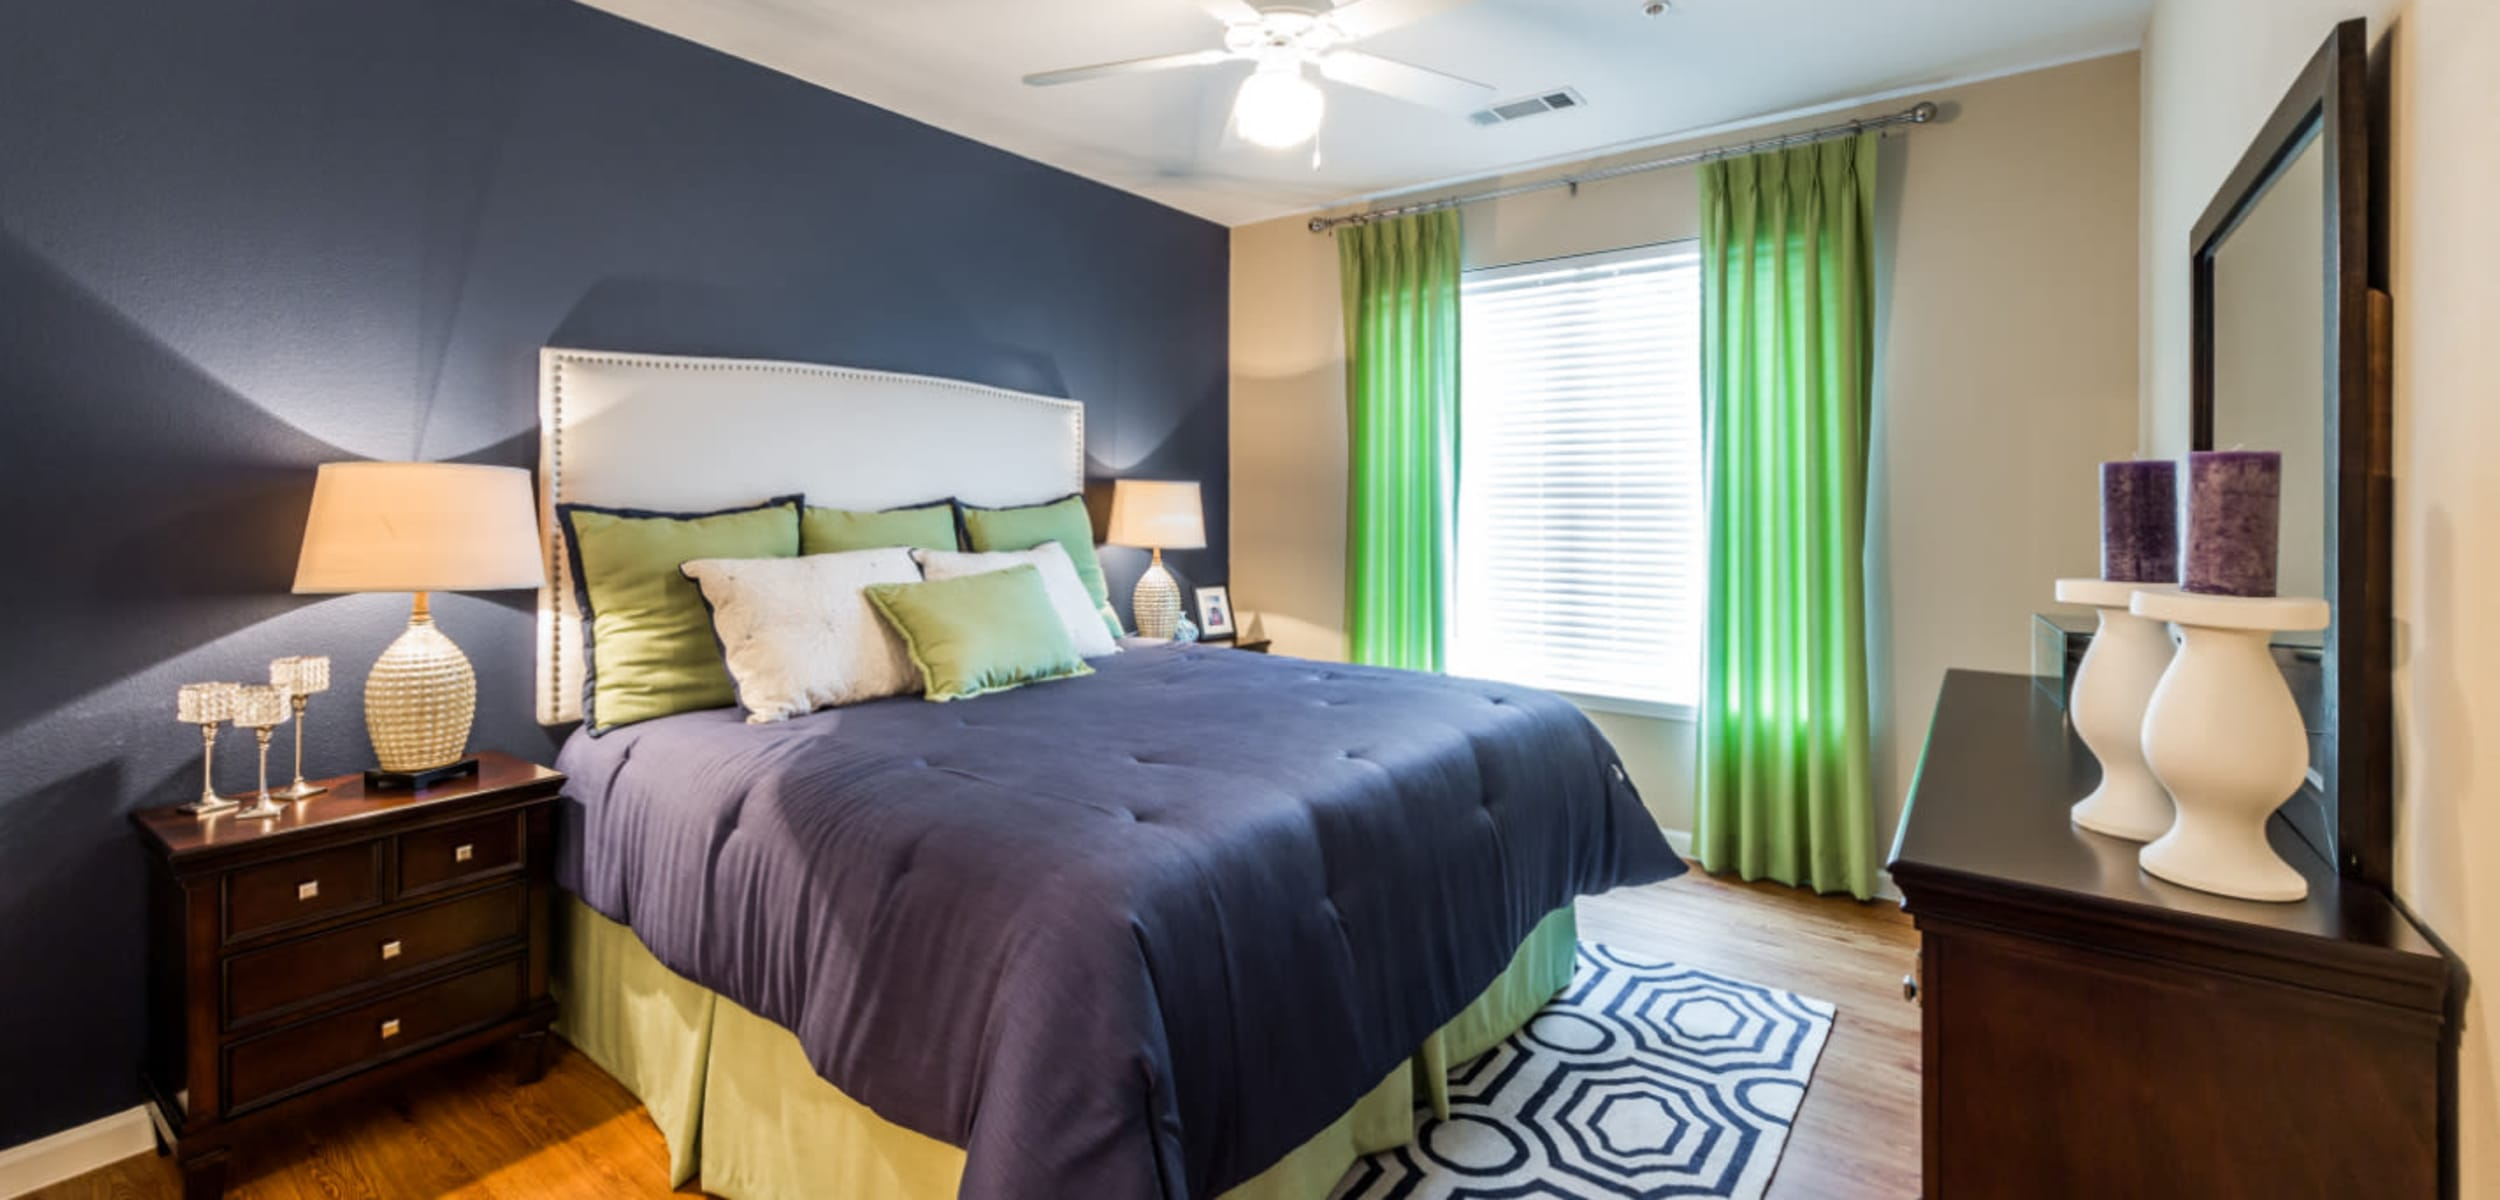 Bedroom with a large window at Marquis at Canyon Ridge in Austin, Texas